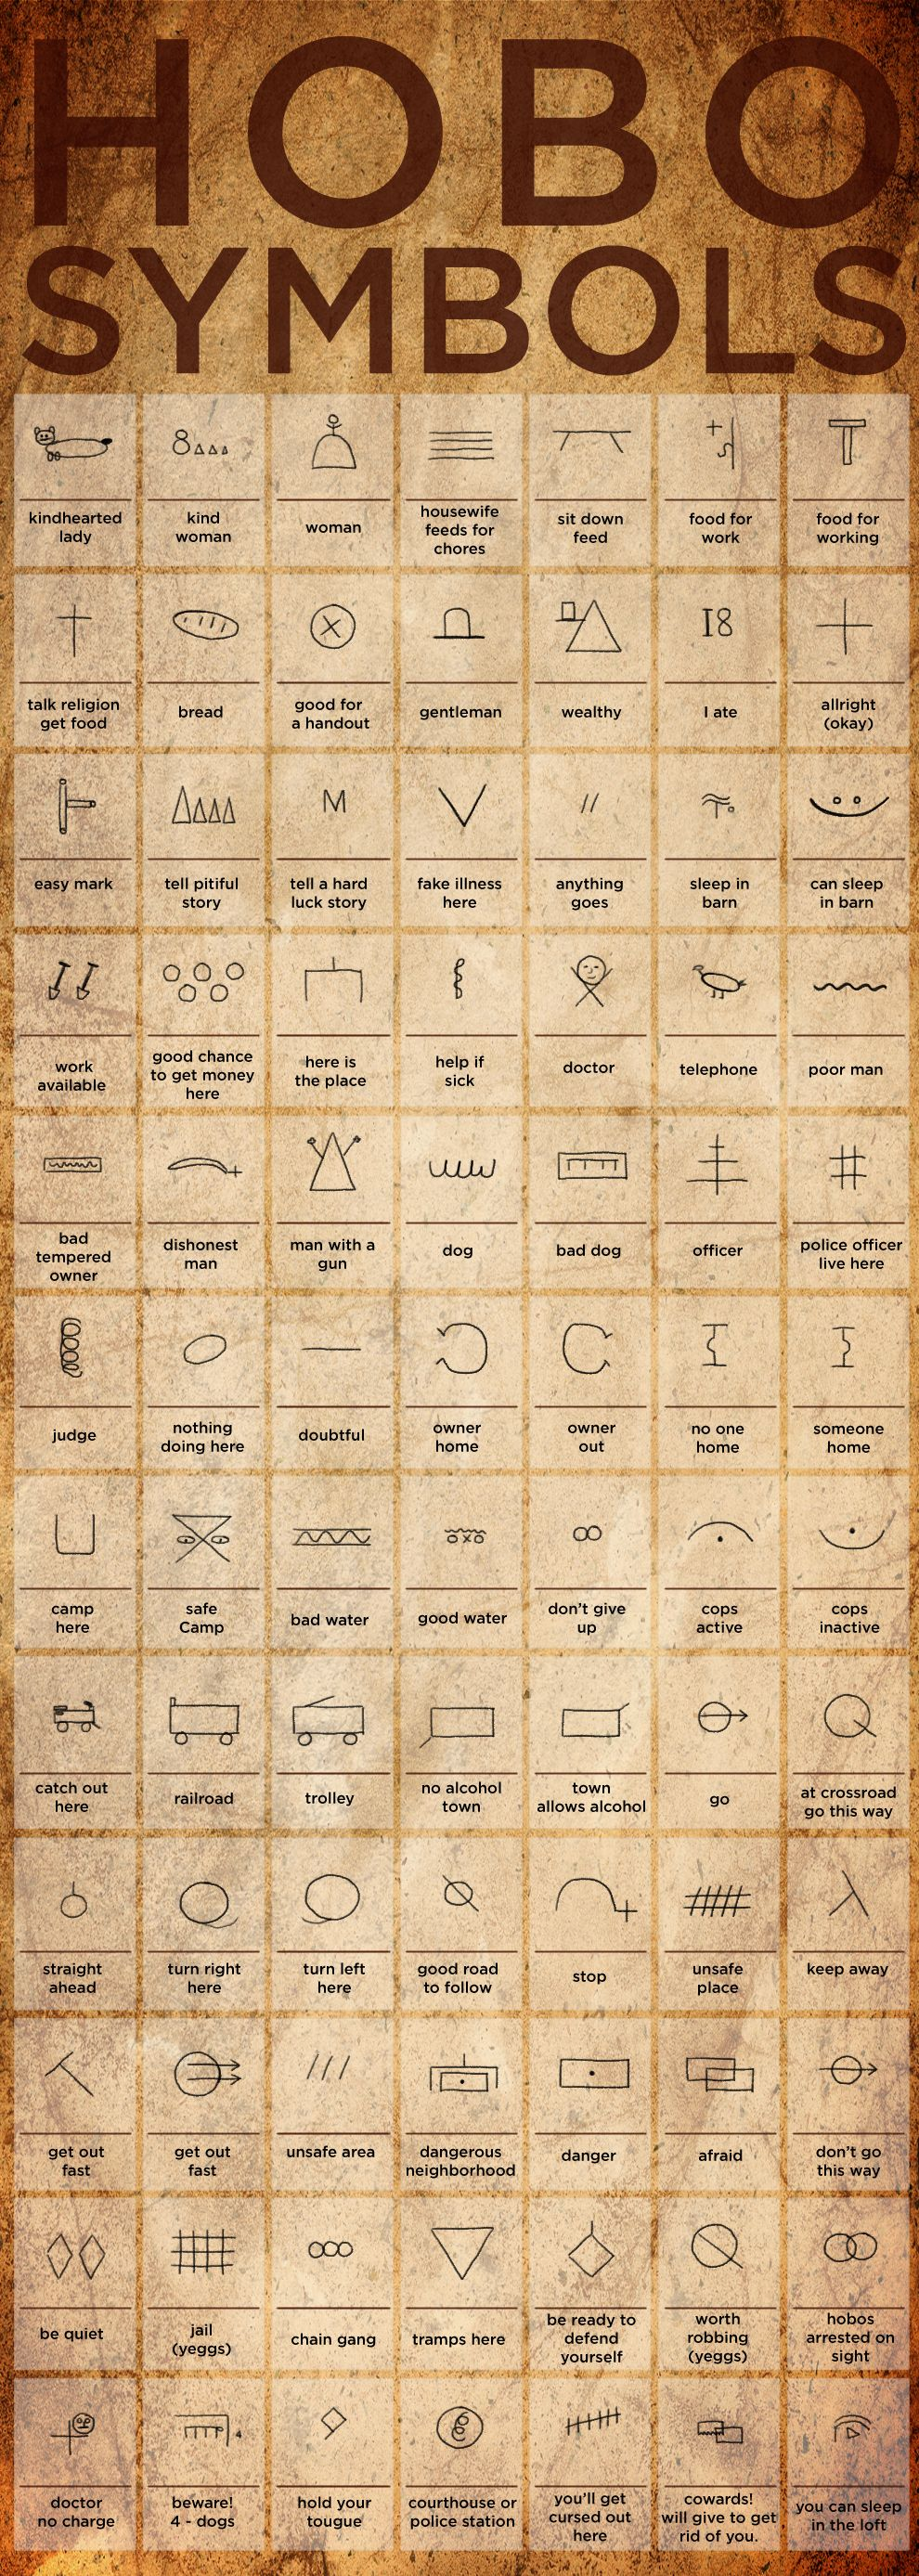 Hobo symbols symbols august 21 and lambs hobo symbols during the great depression hobos would communicate with each other using signs biocorpaavc Gallery